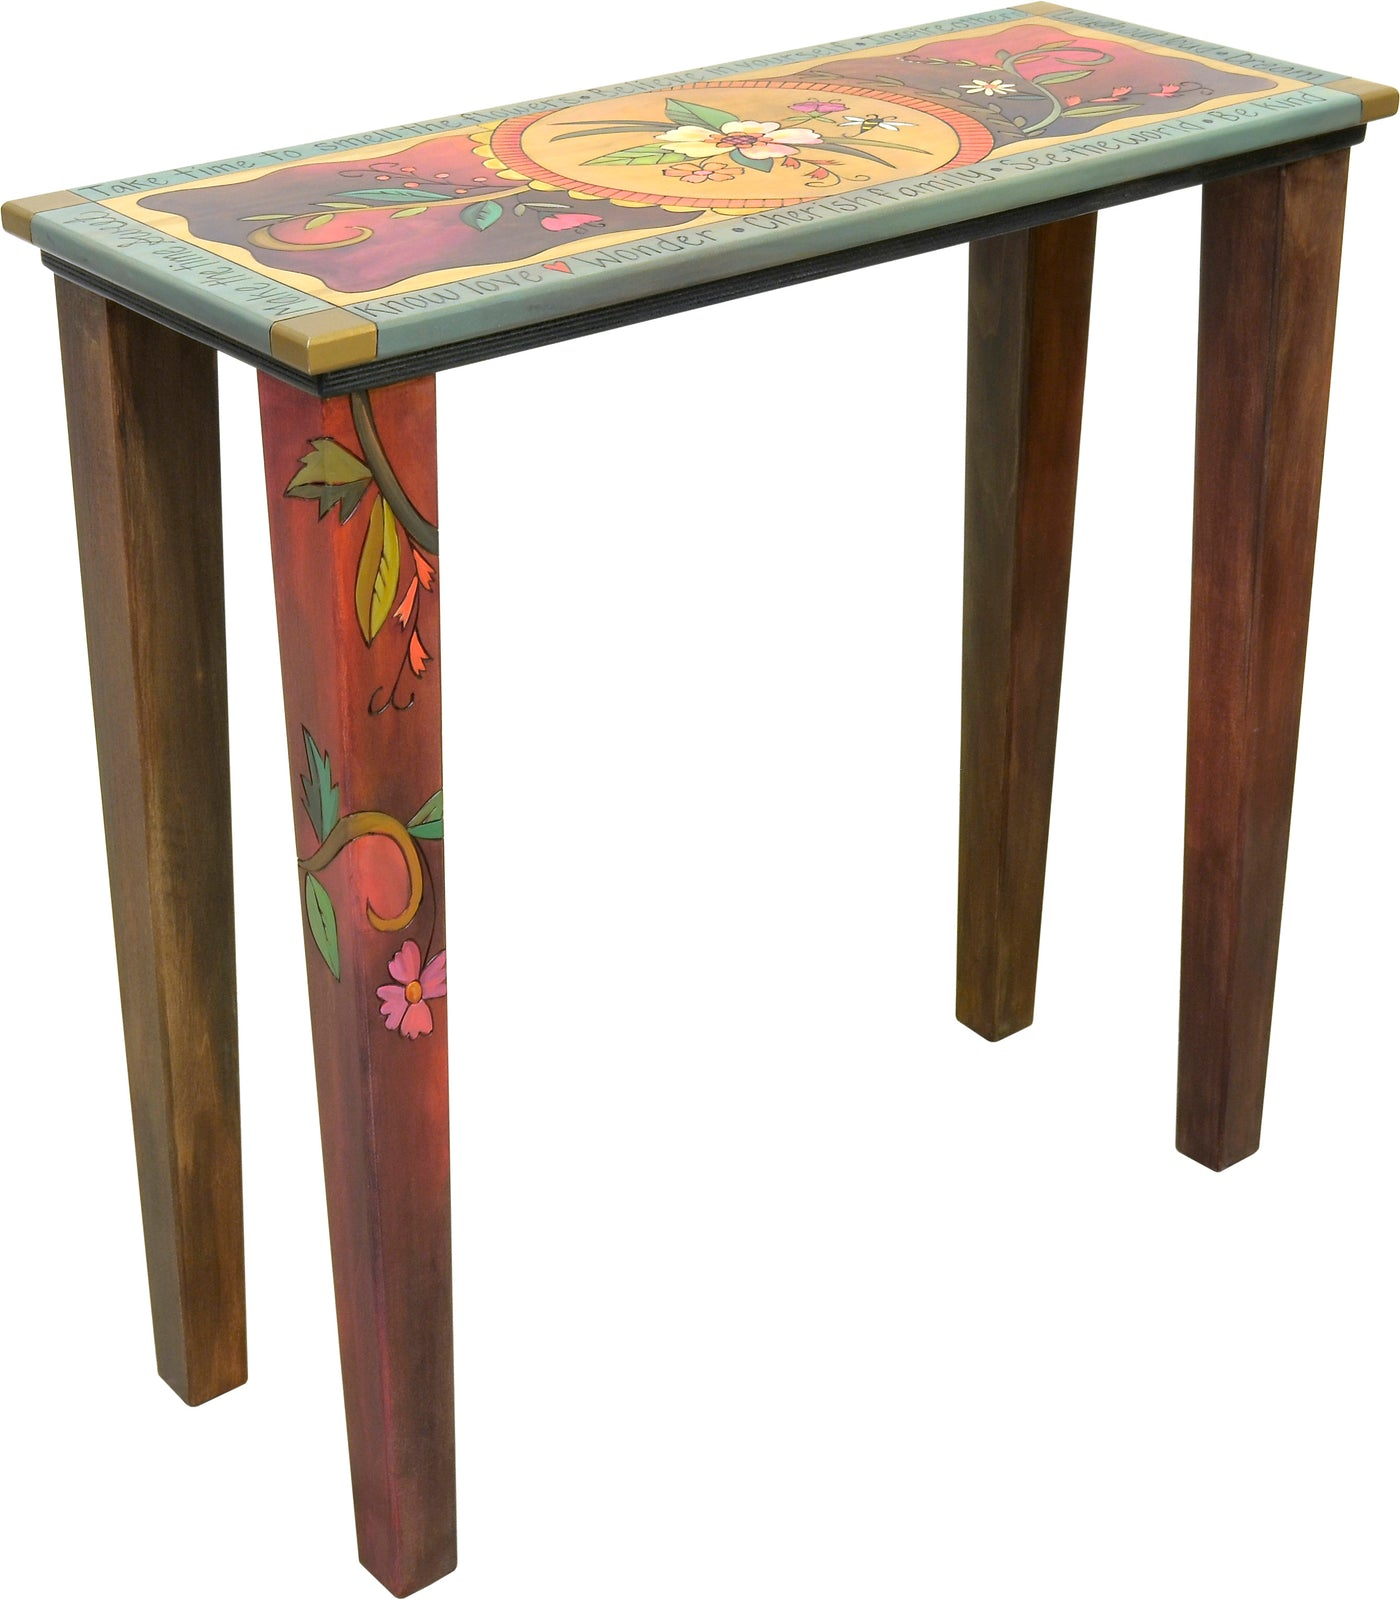 Charmant Sticks Handmade Console Table With Floral Motif ...